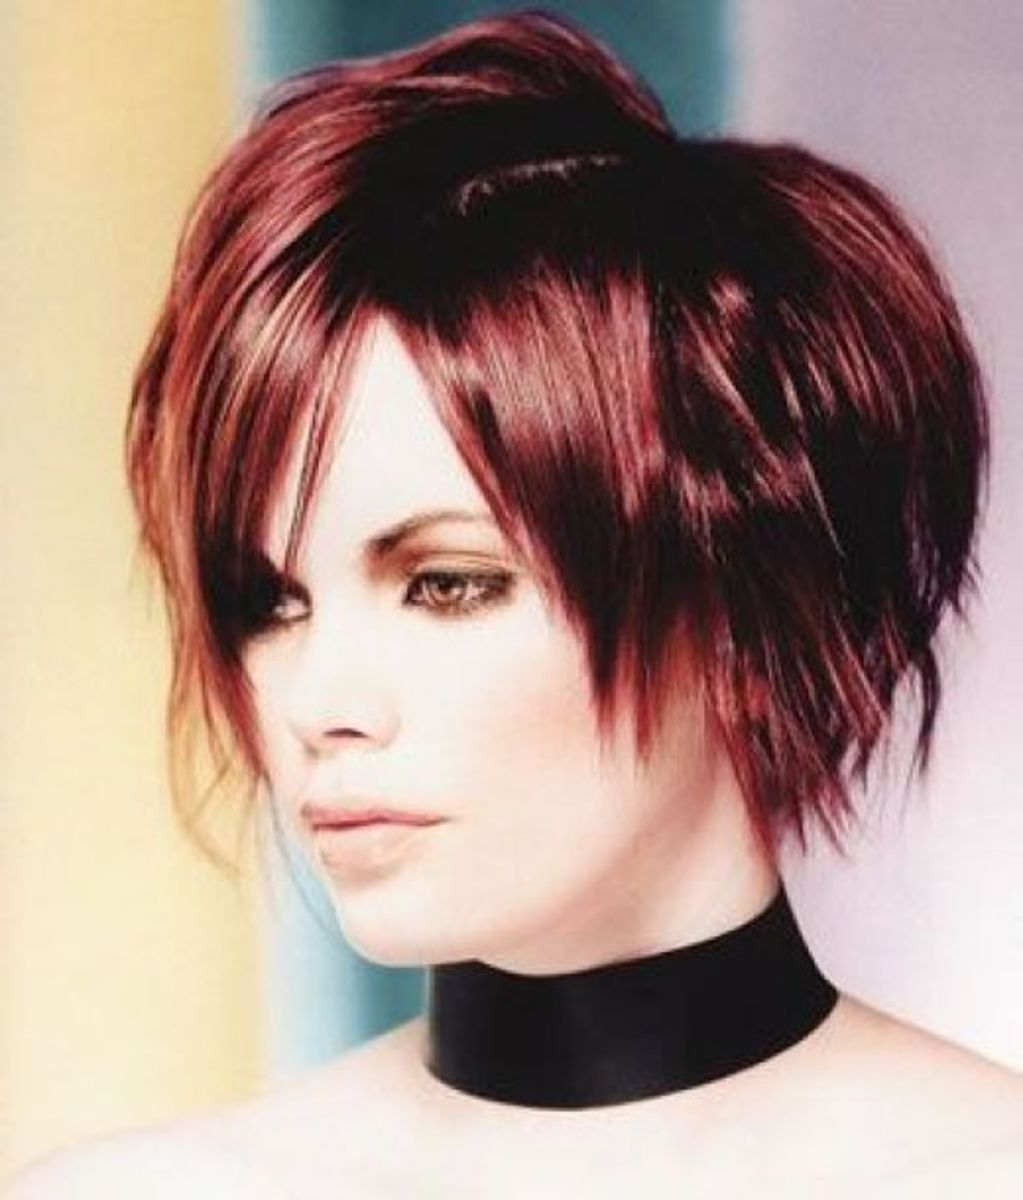 Haircut Hairstyles Ideas in 2009